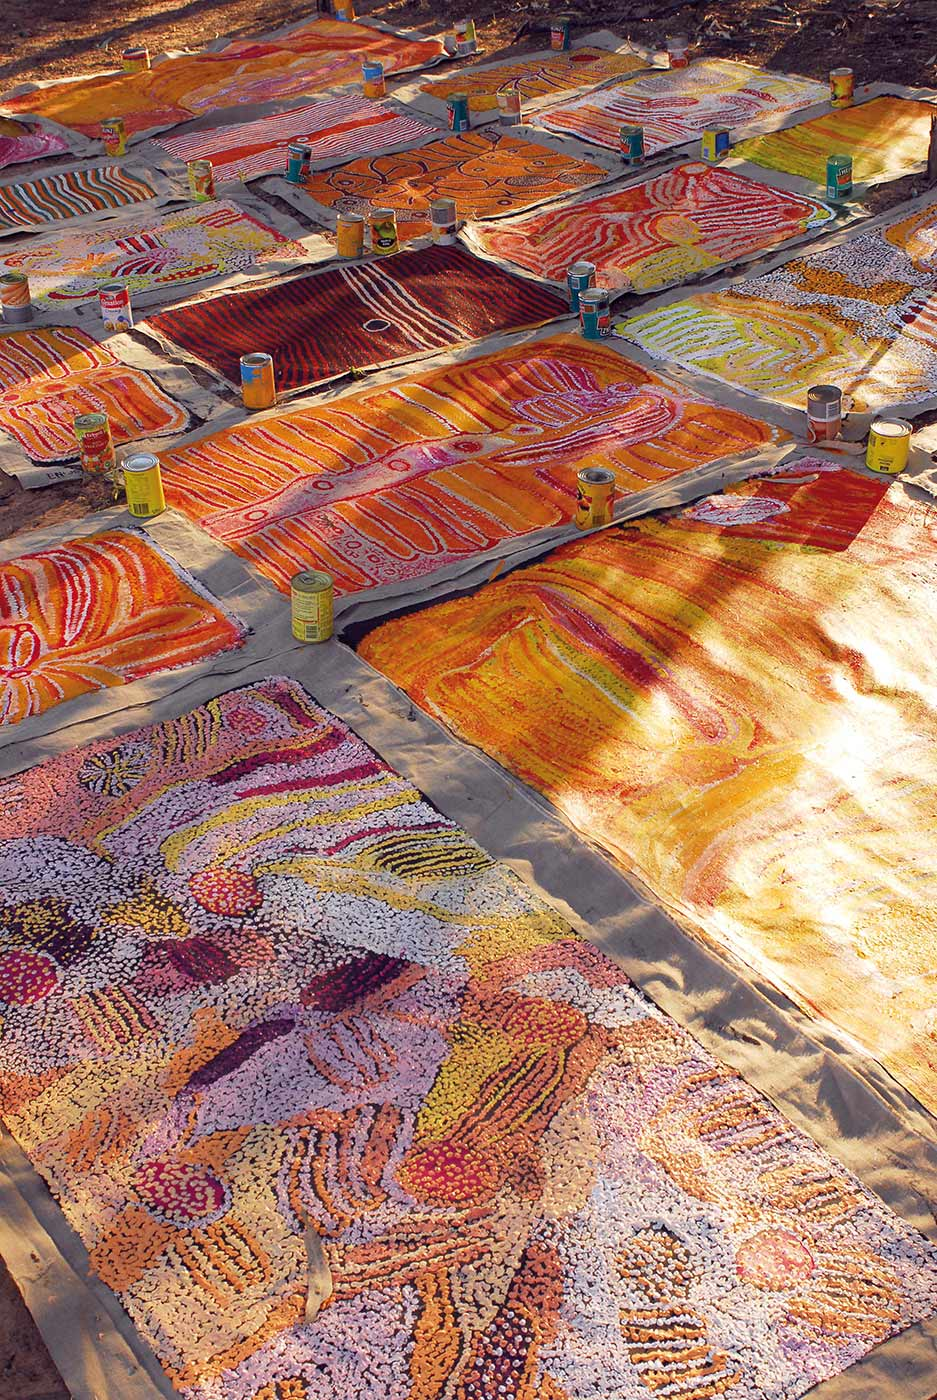 Colour photo of painting canvases spread out on the ground. There are tin cans placed on their edges in order to prevent them from blowing away. - click to view larger image